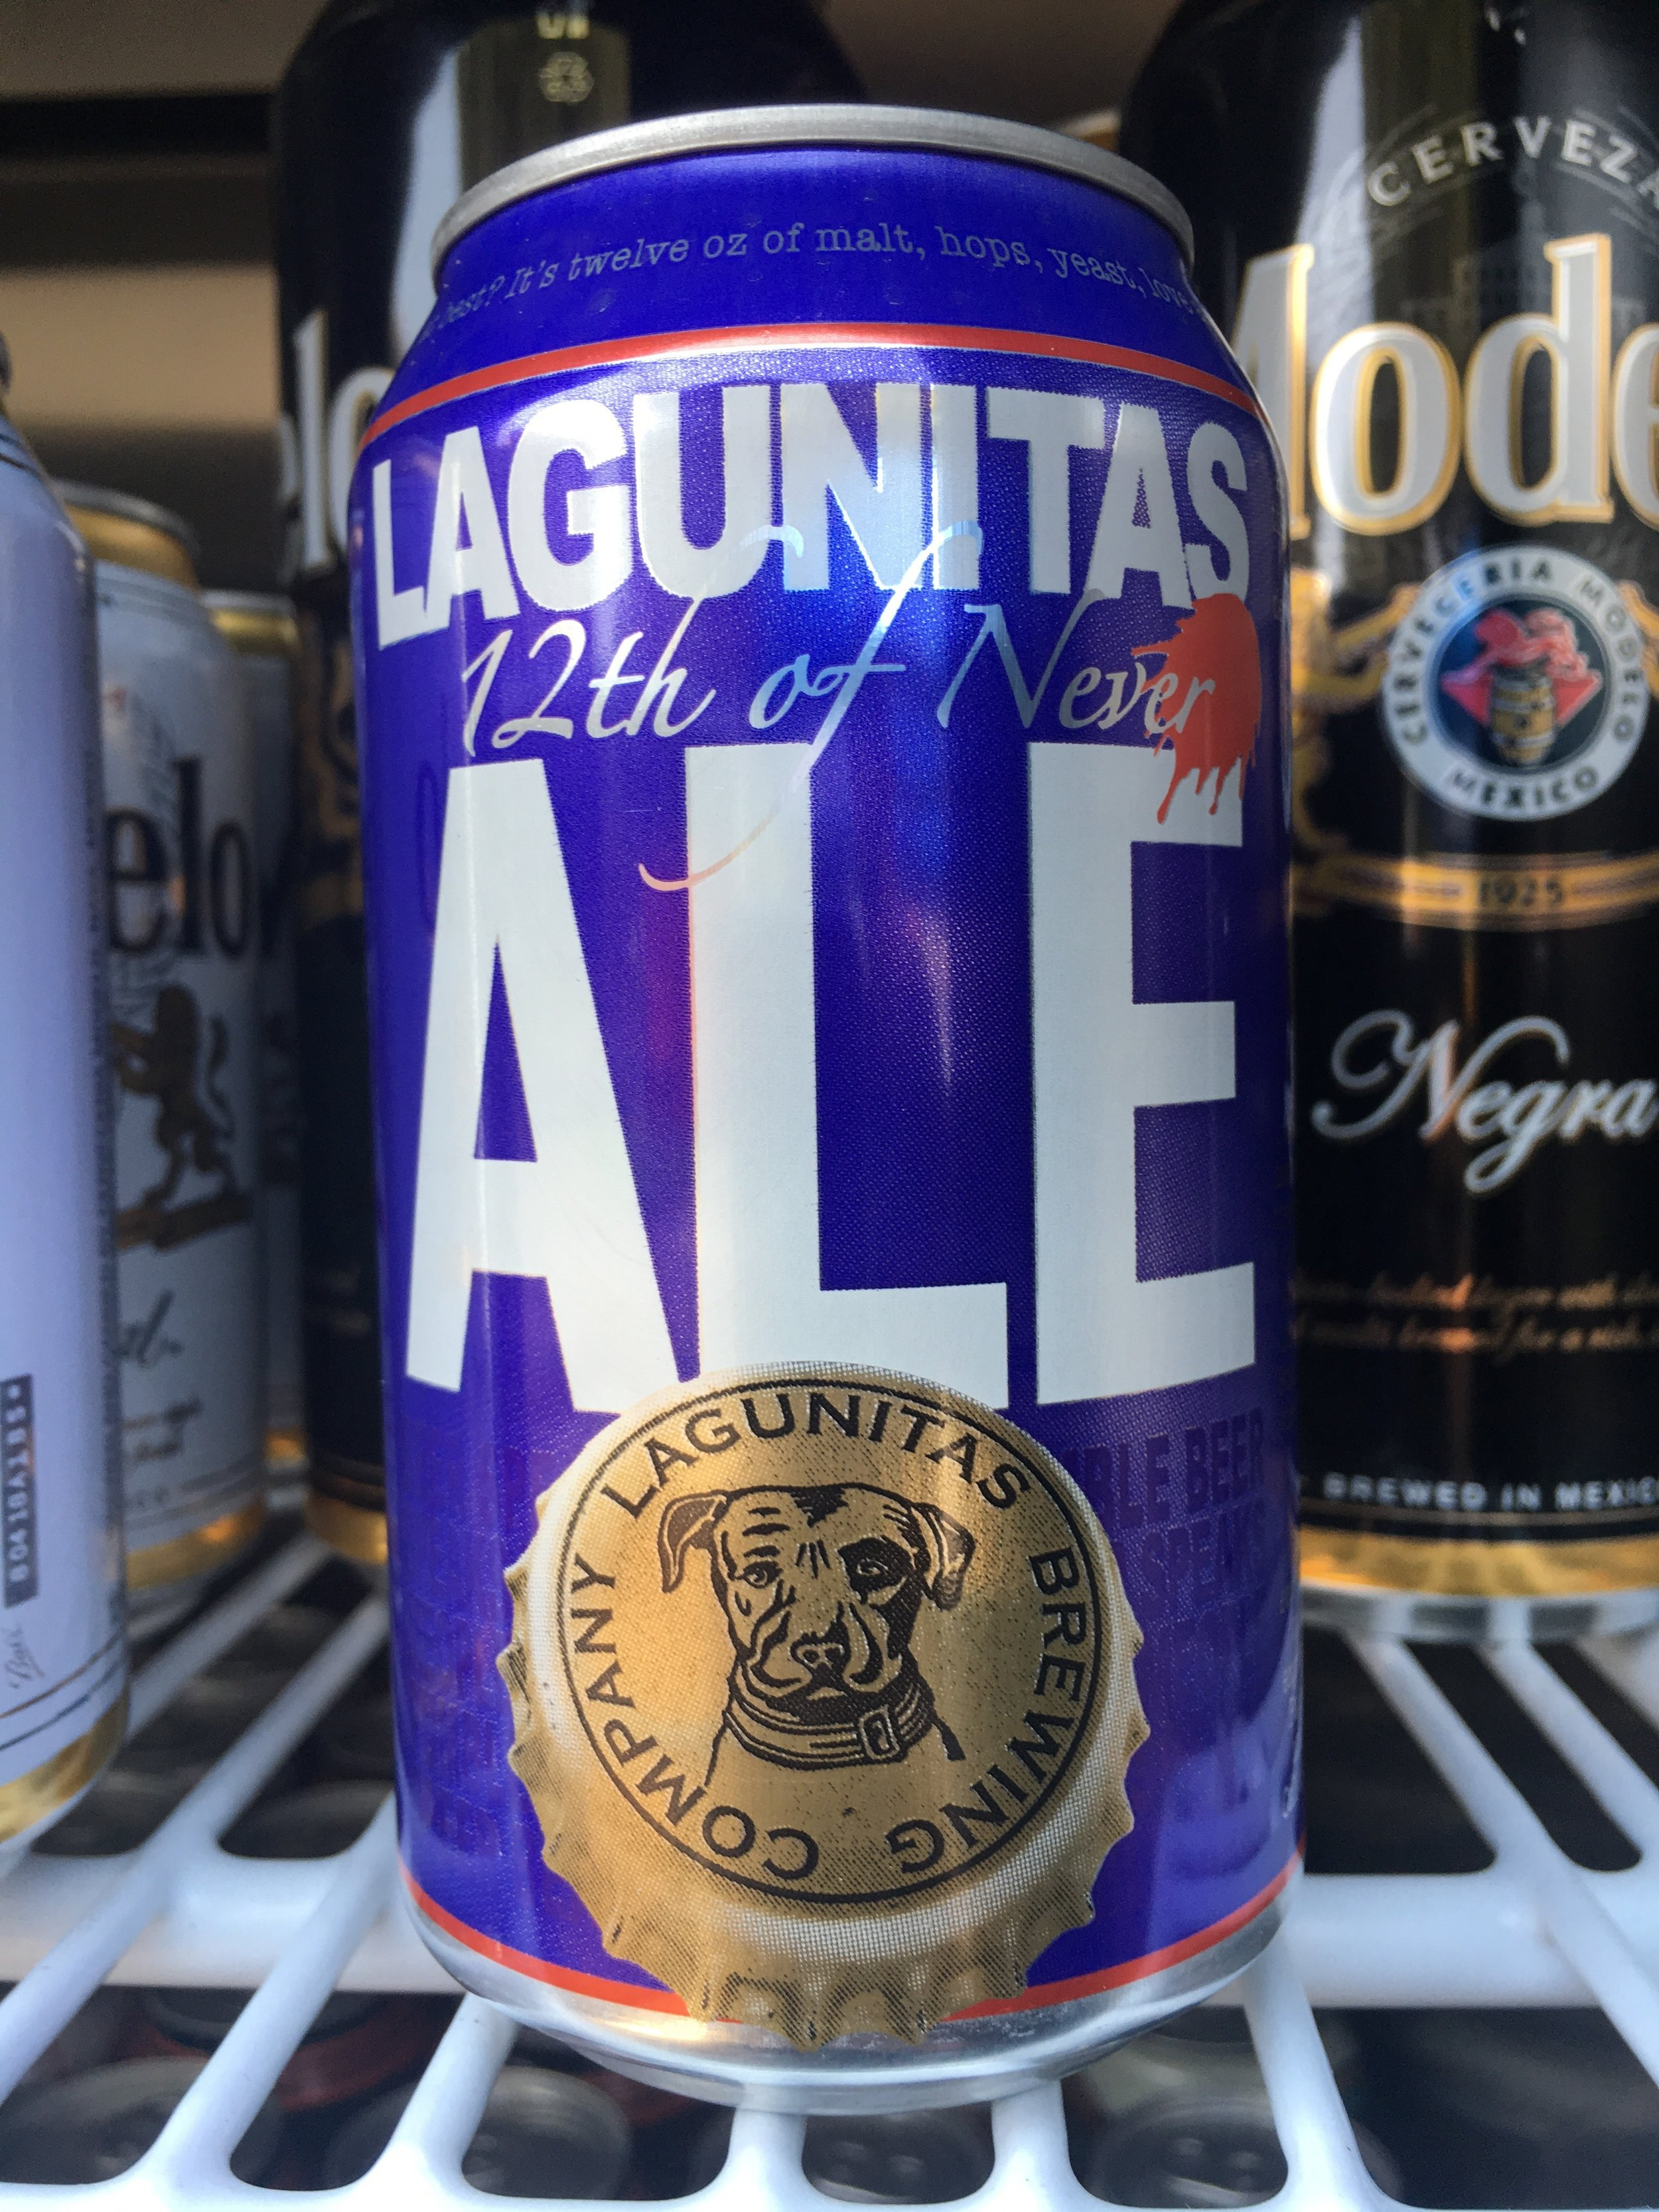 Lagunitas Brewing - 12th of Never Pale Ale